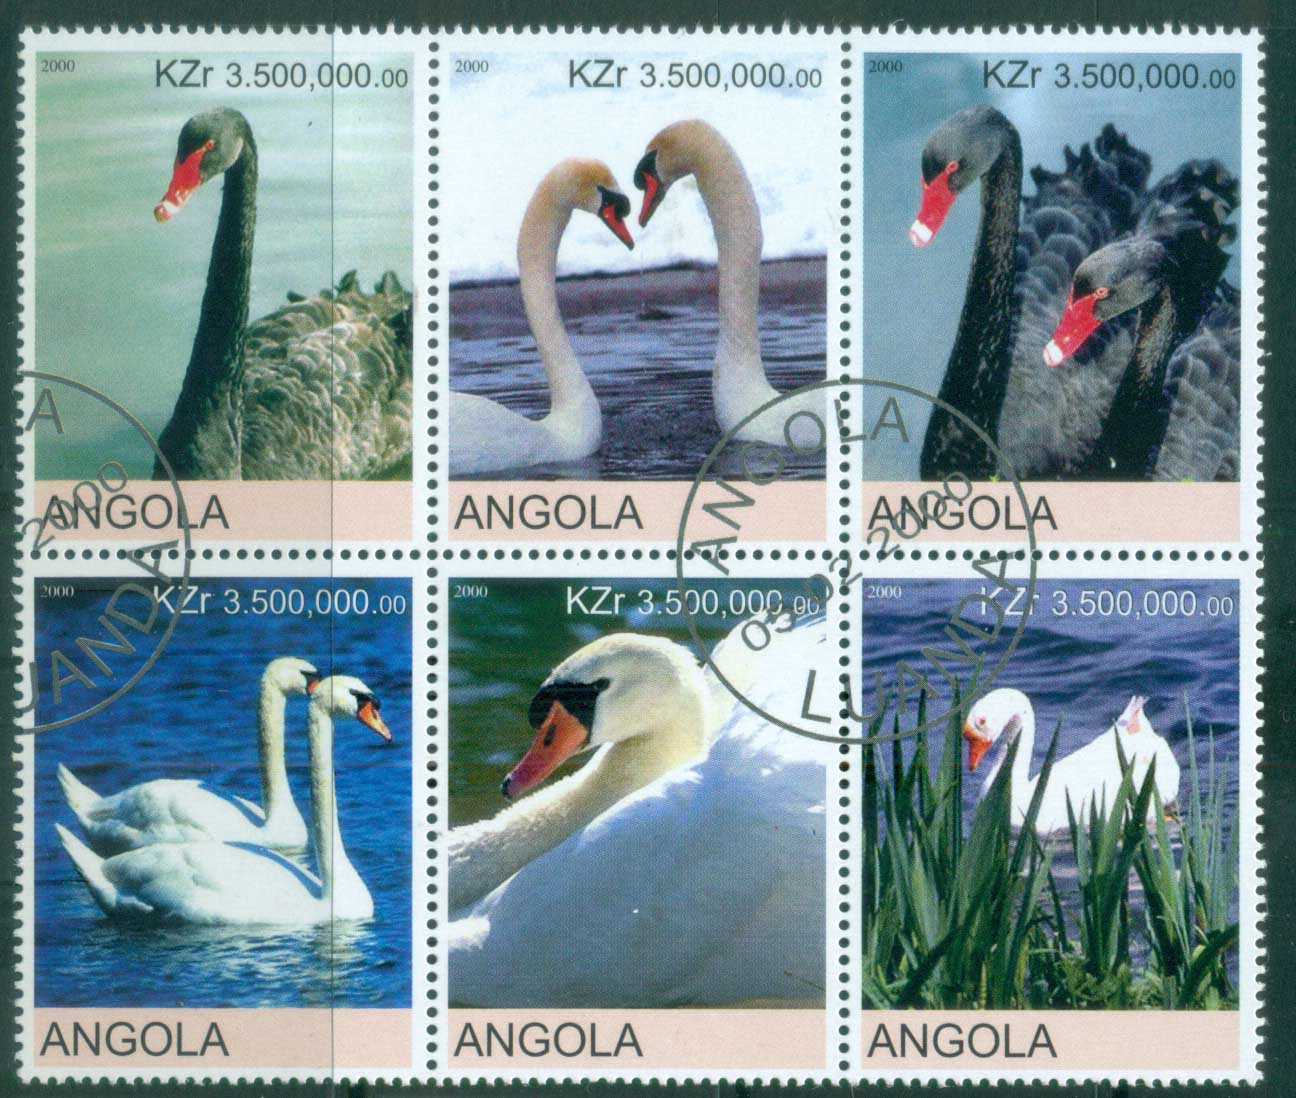 Angola 2000 Birds, Swans (Rebel Issue) CTO